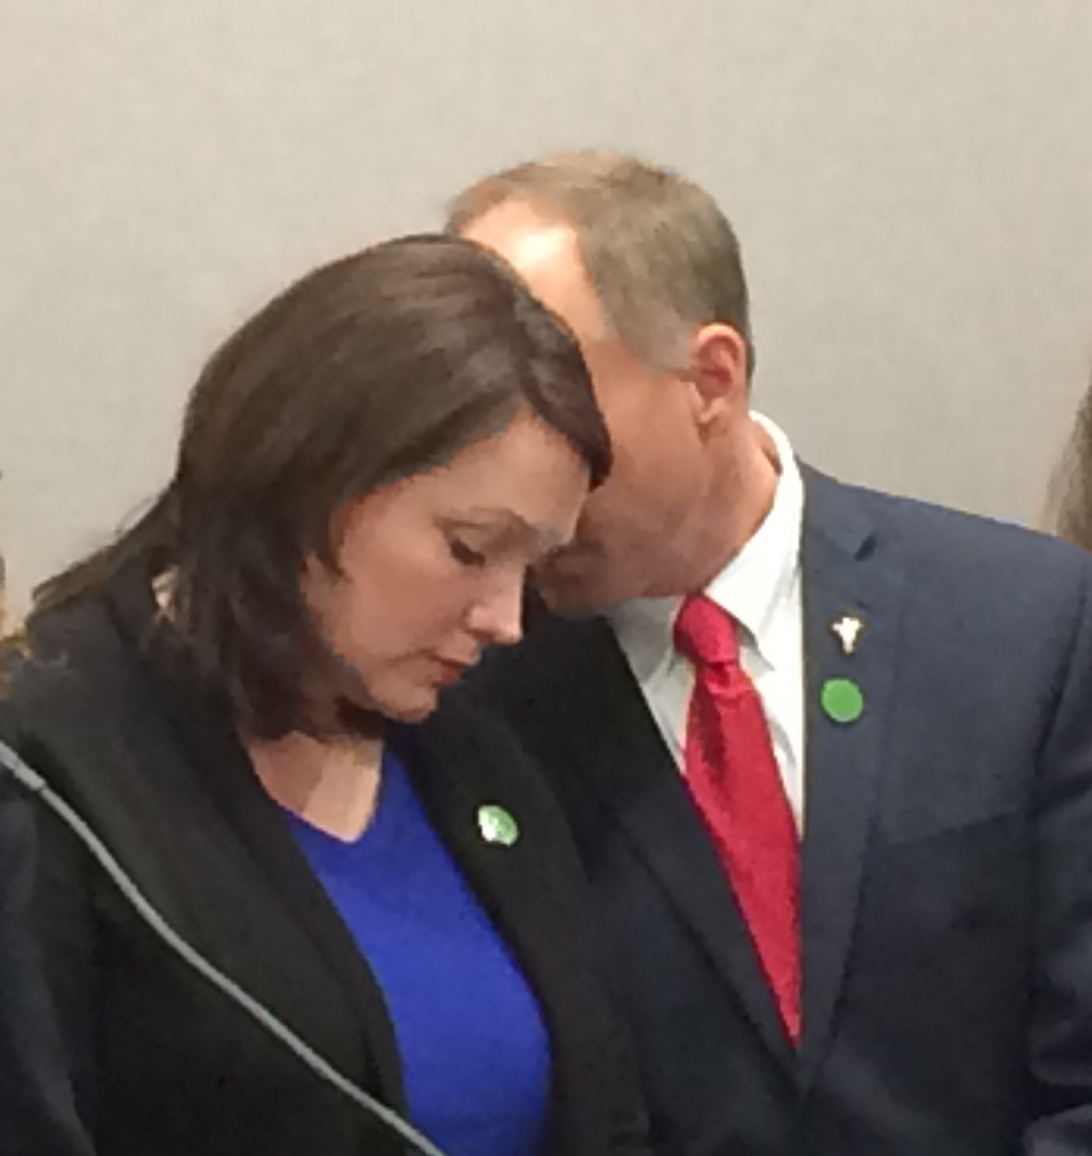 Nicole Hockley and Mark Barden, two Sandy Hook parents, share a moment Monday.